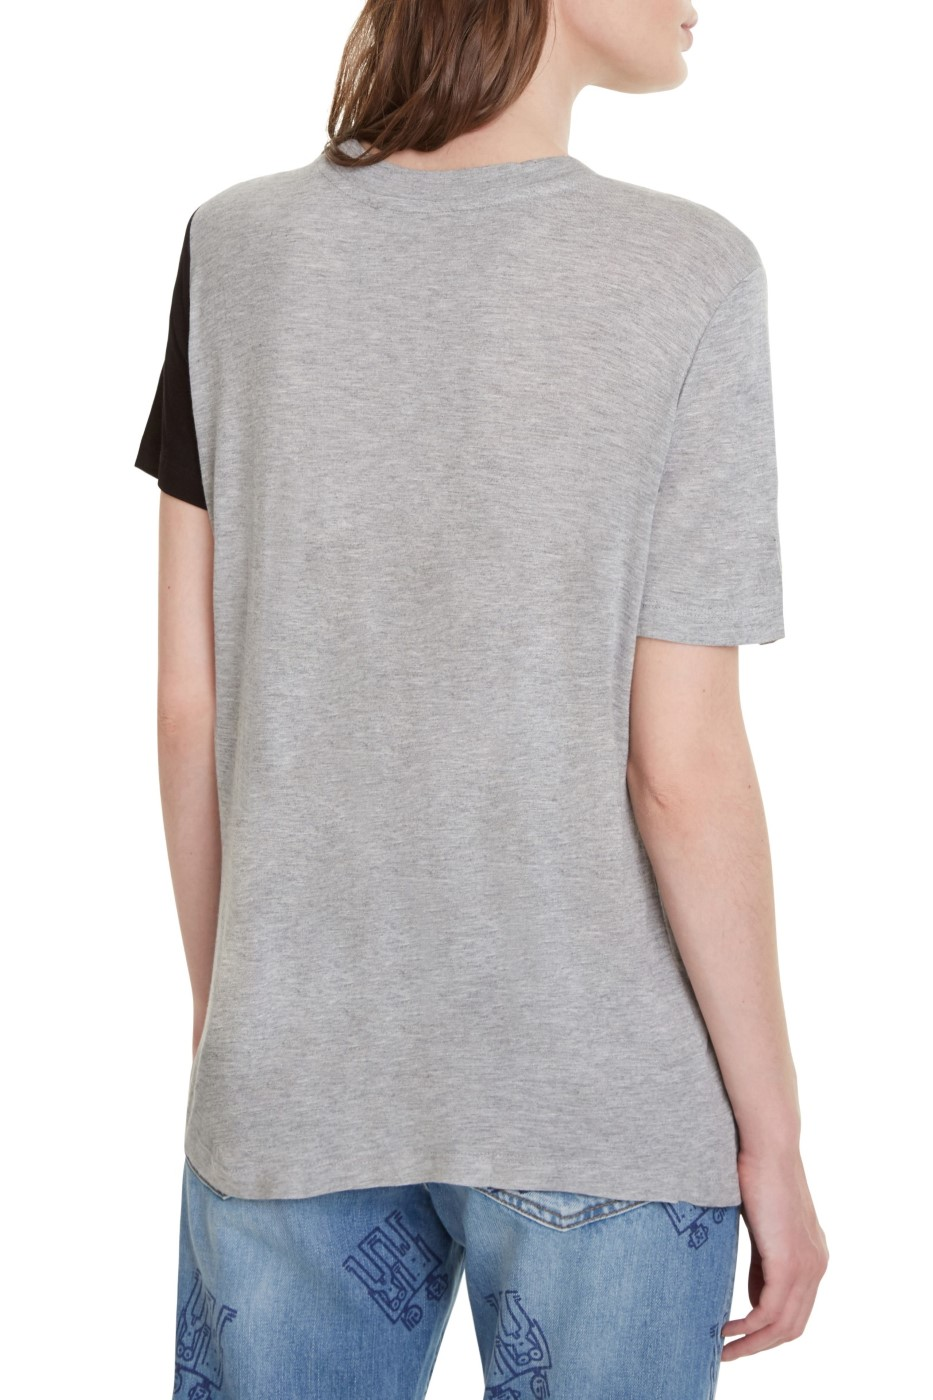 Desigual grey T-shirt TS Faith